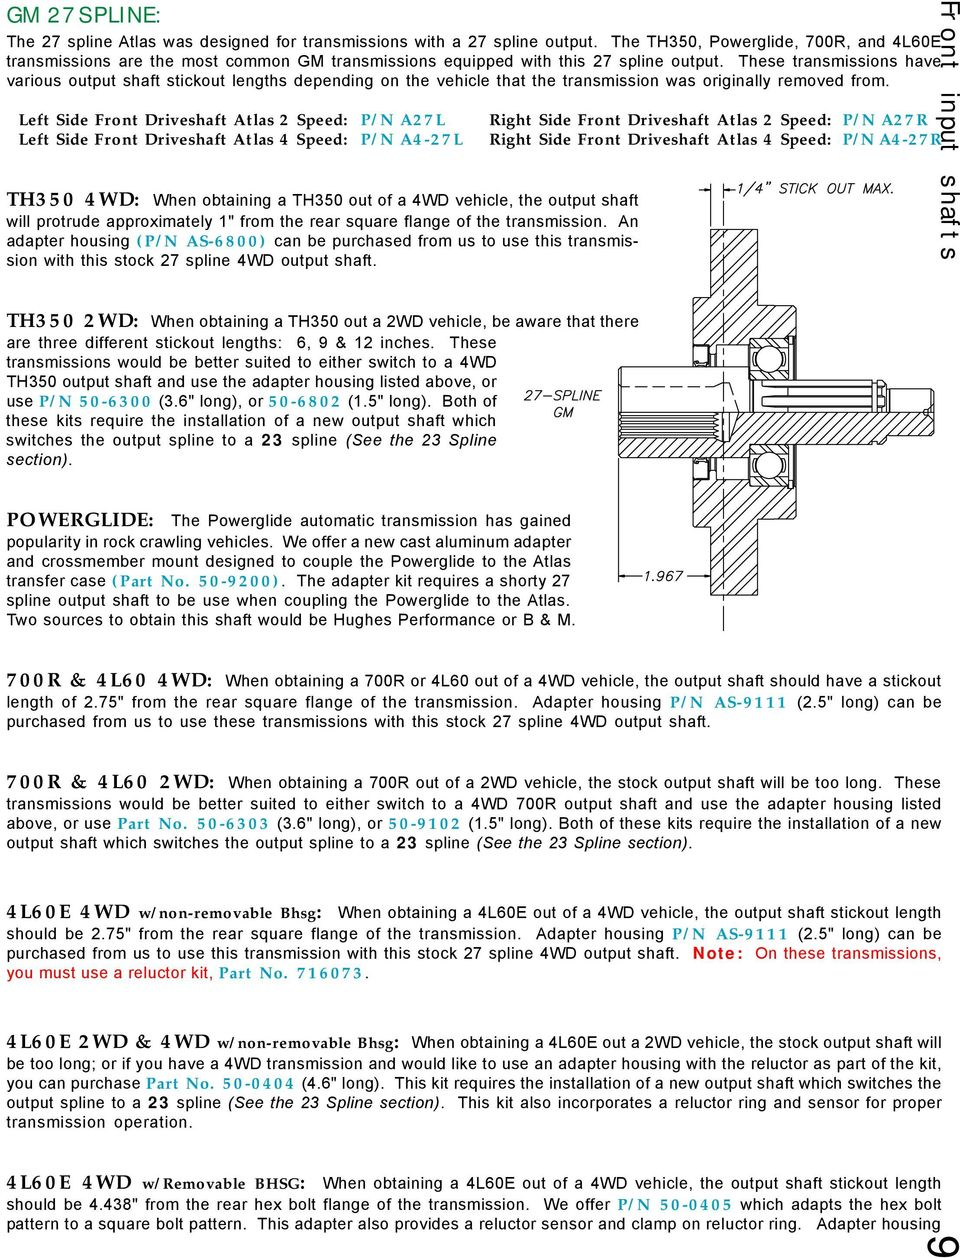 hight resolution of these transmissions have various output shaft stickout lengths depending on the vehicle that the transmission was